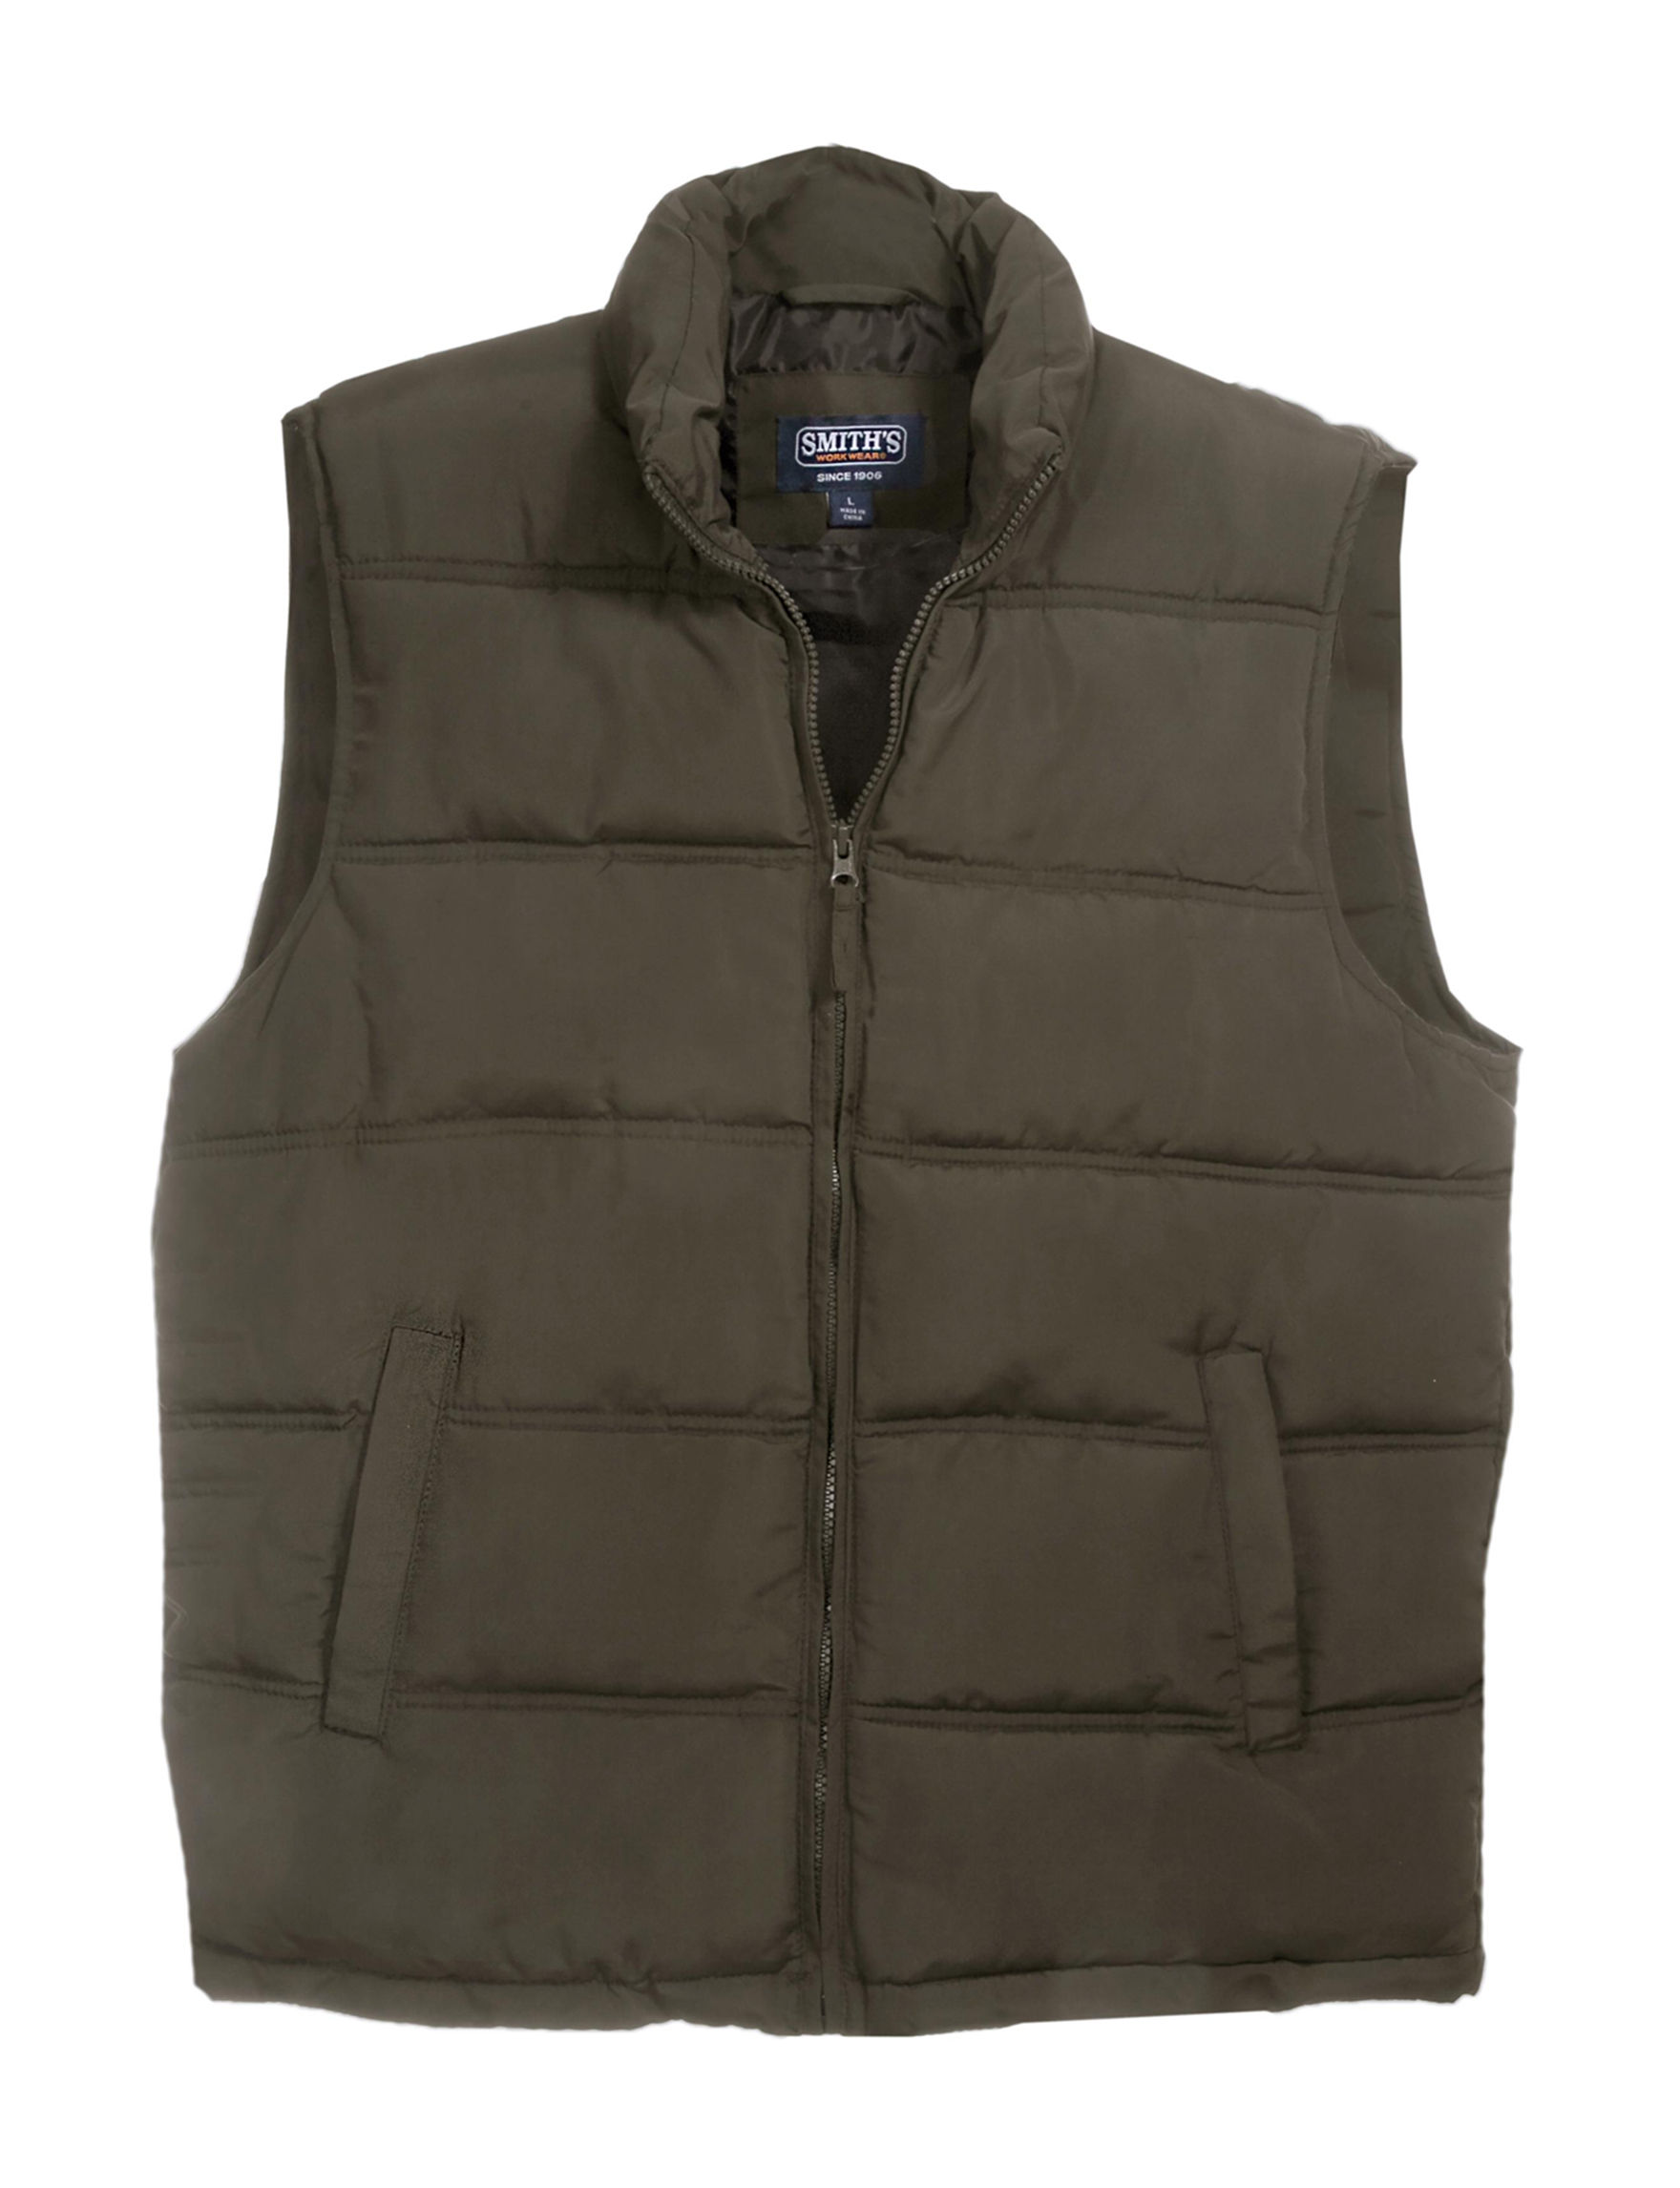 Smith's Workwear Charcoal Vests